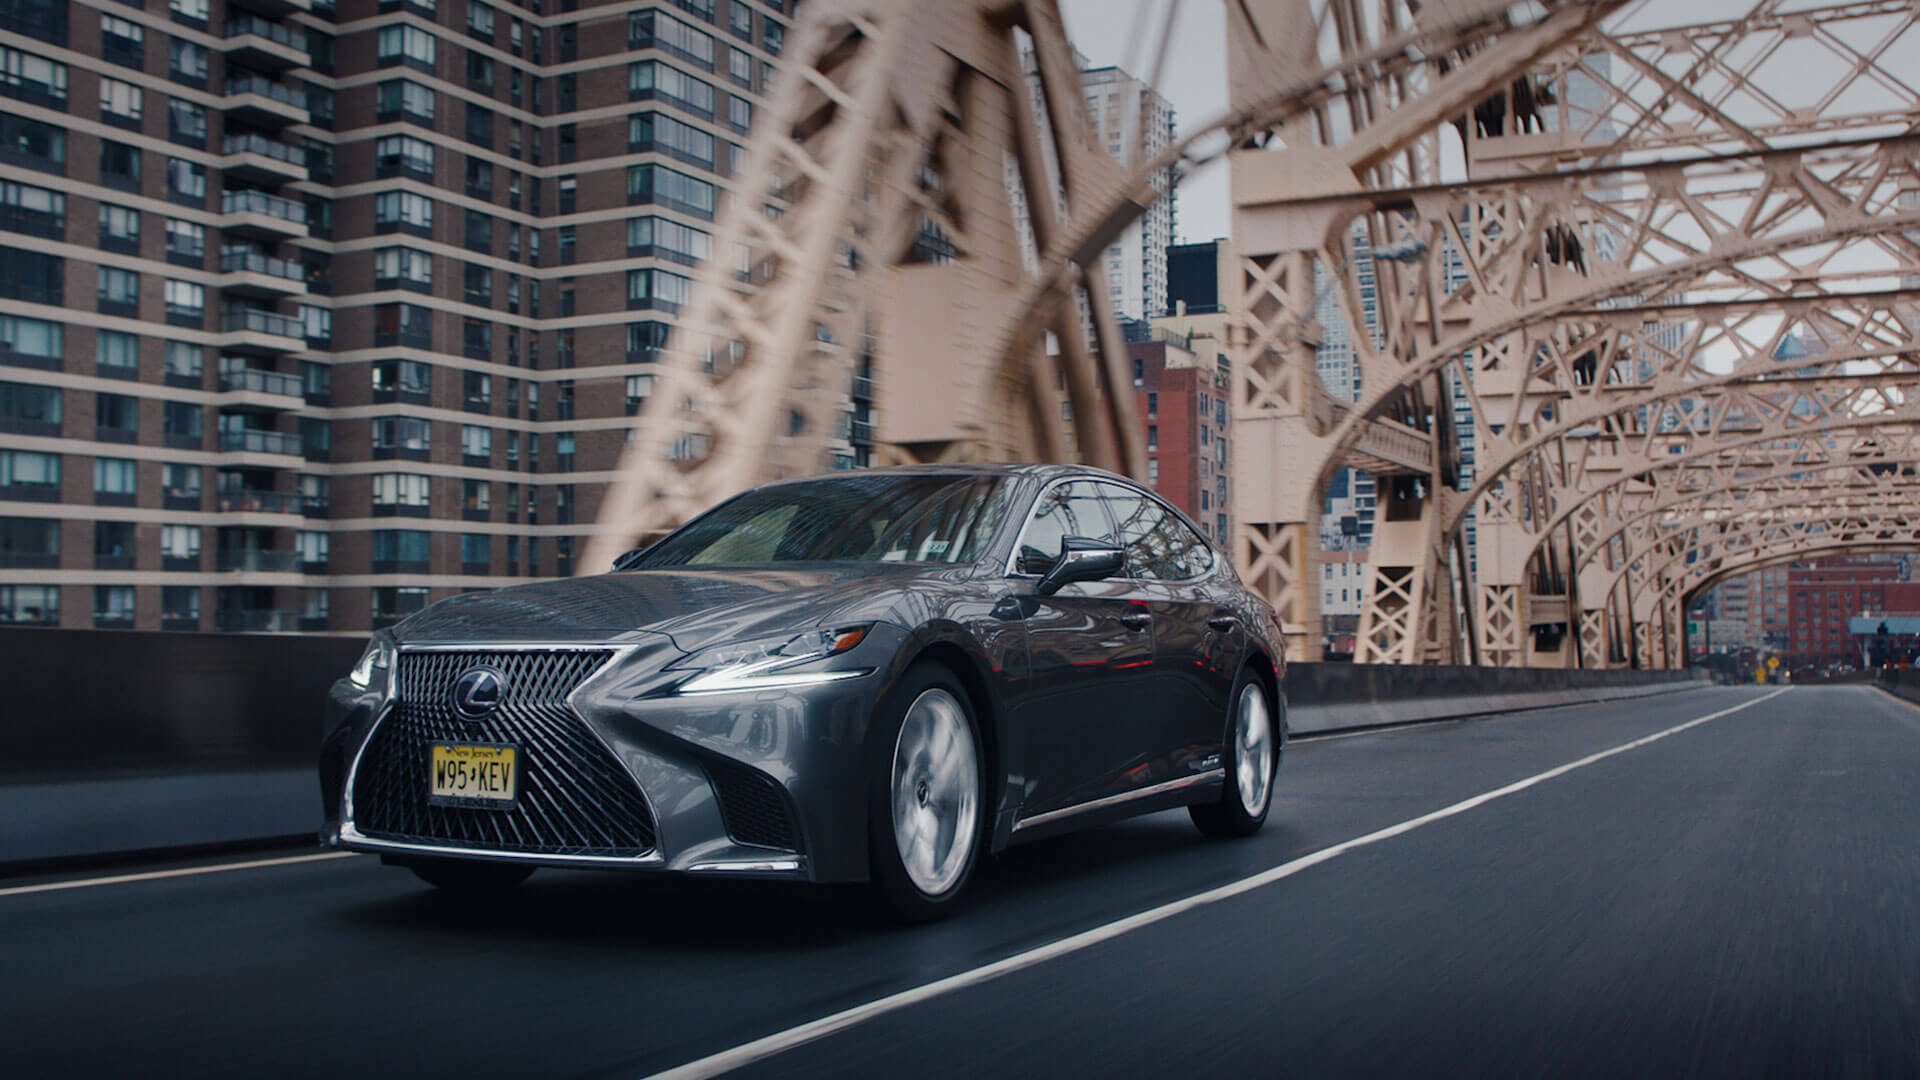 2019 lexus jit episode 4 ls gallery 01